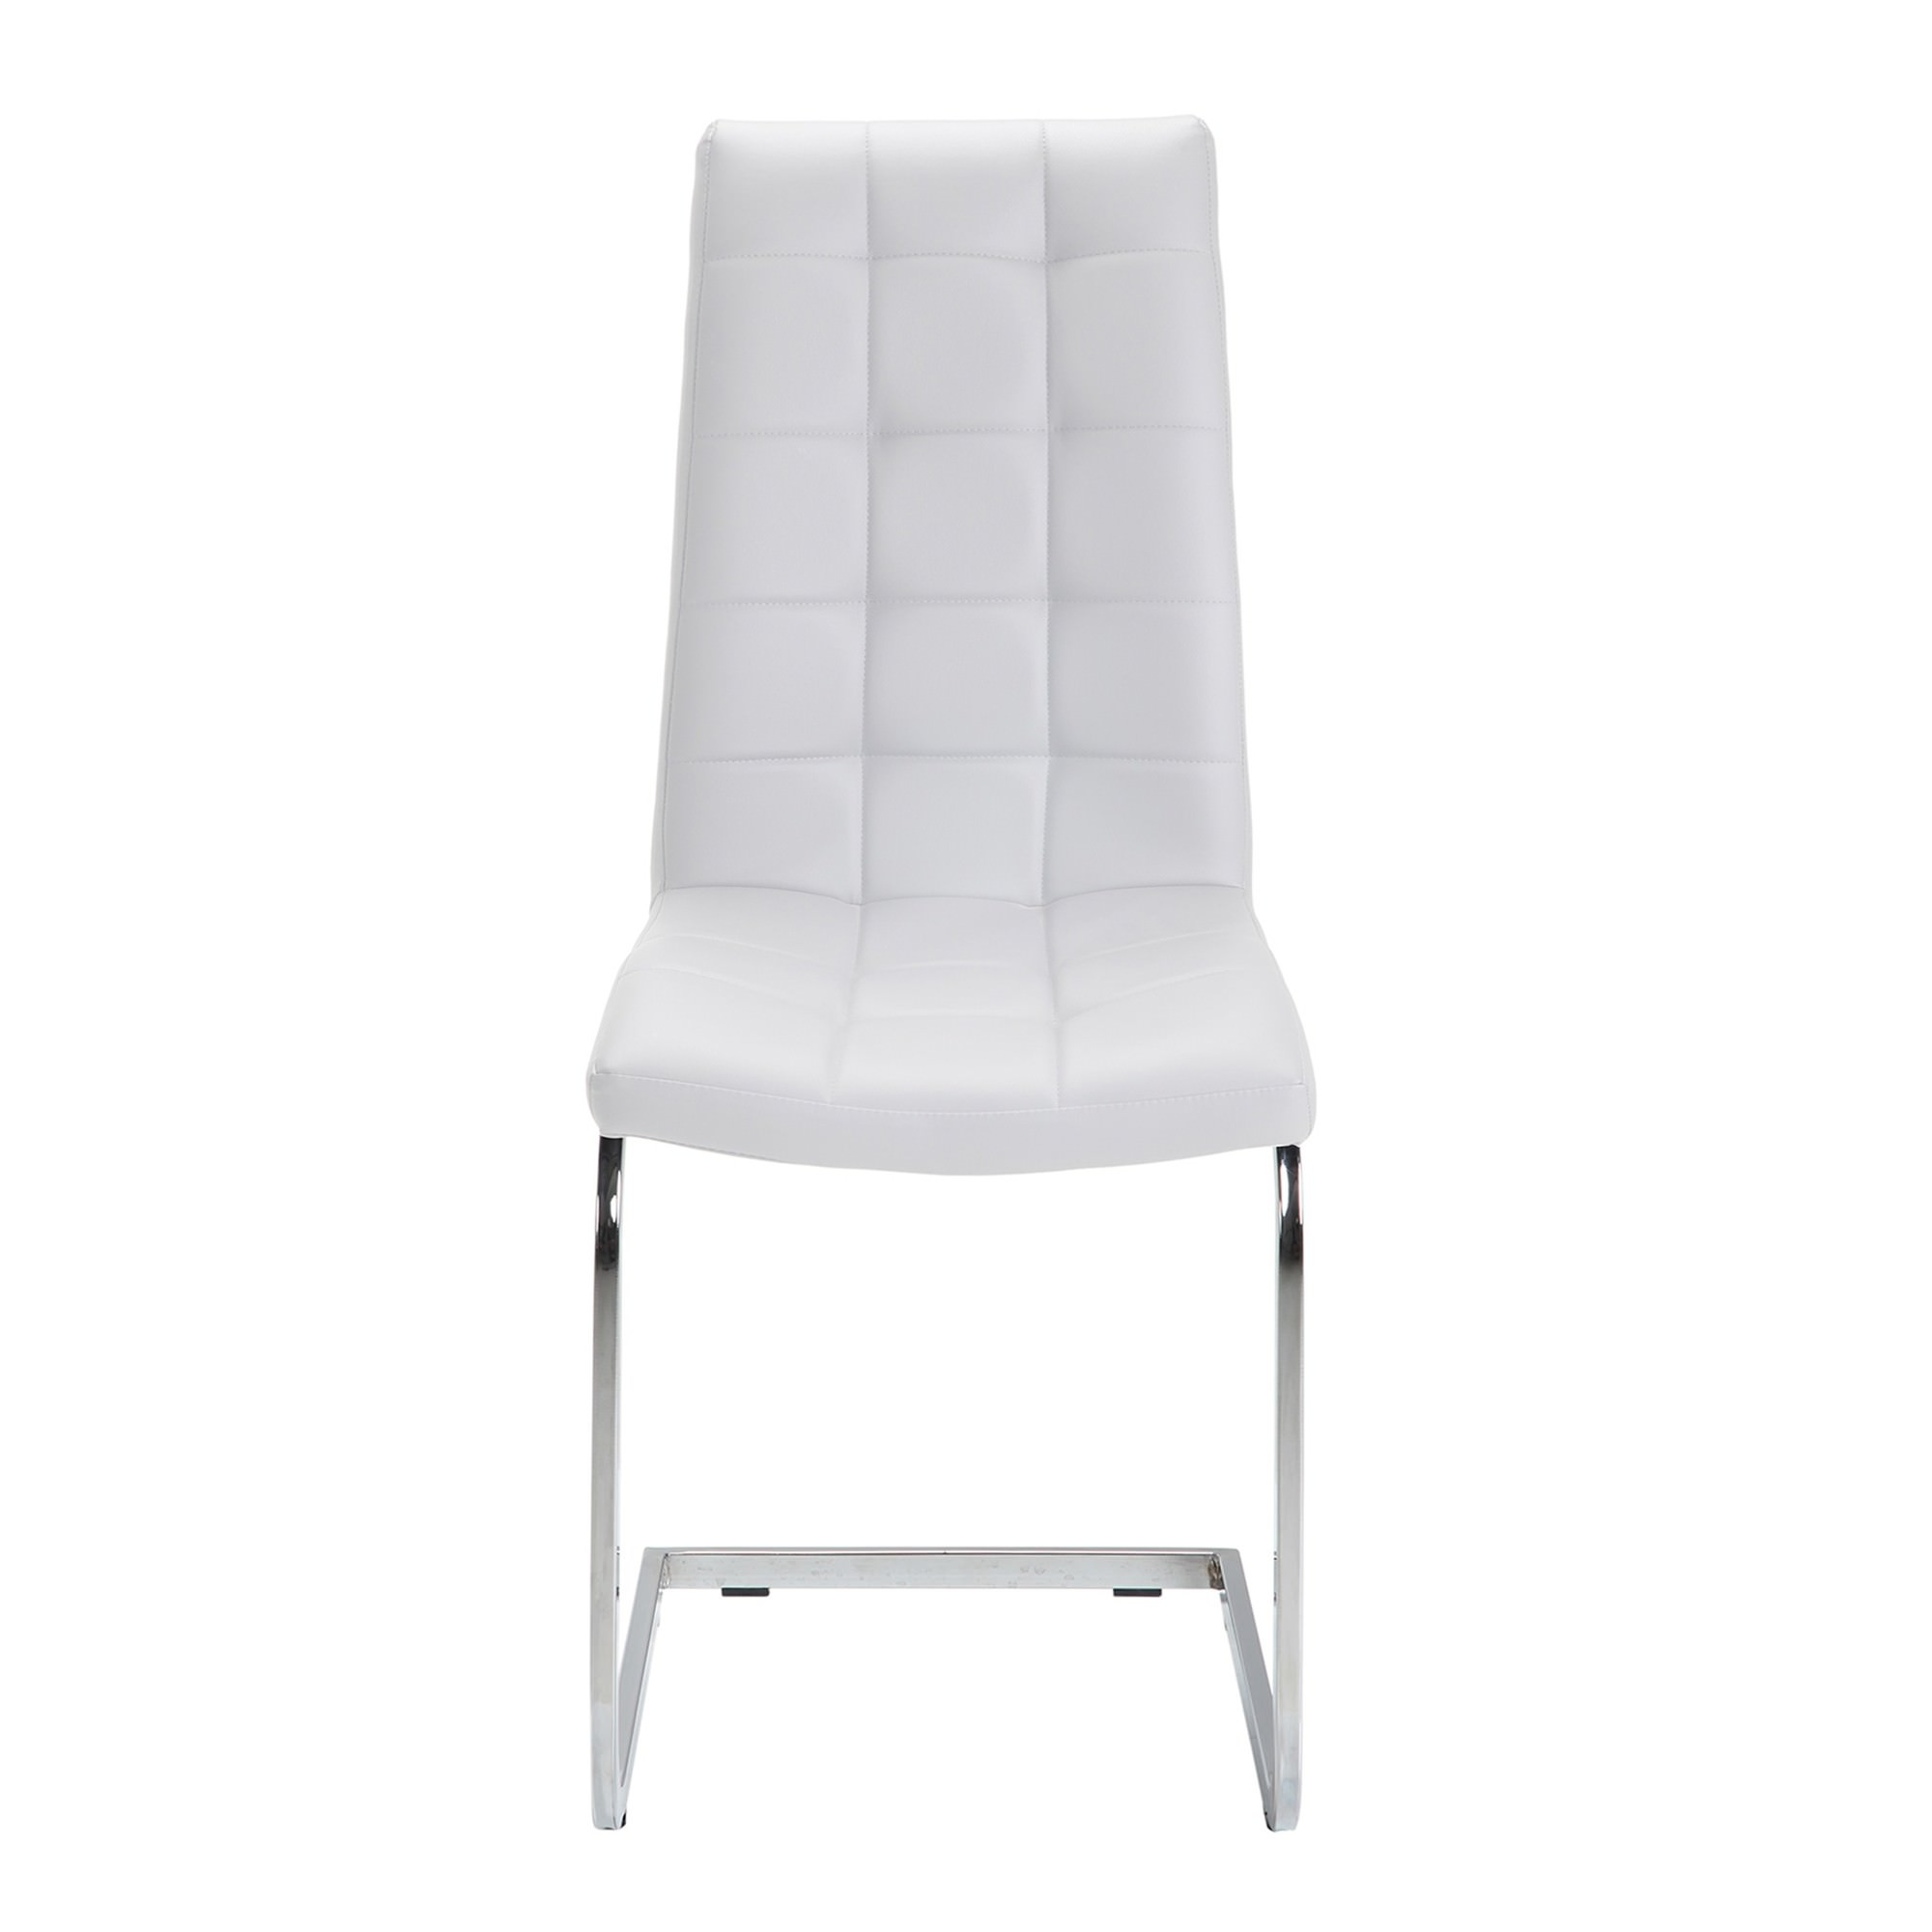 Cresswell Faux Leather Dining Chair, White